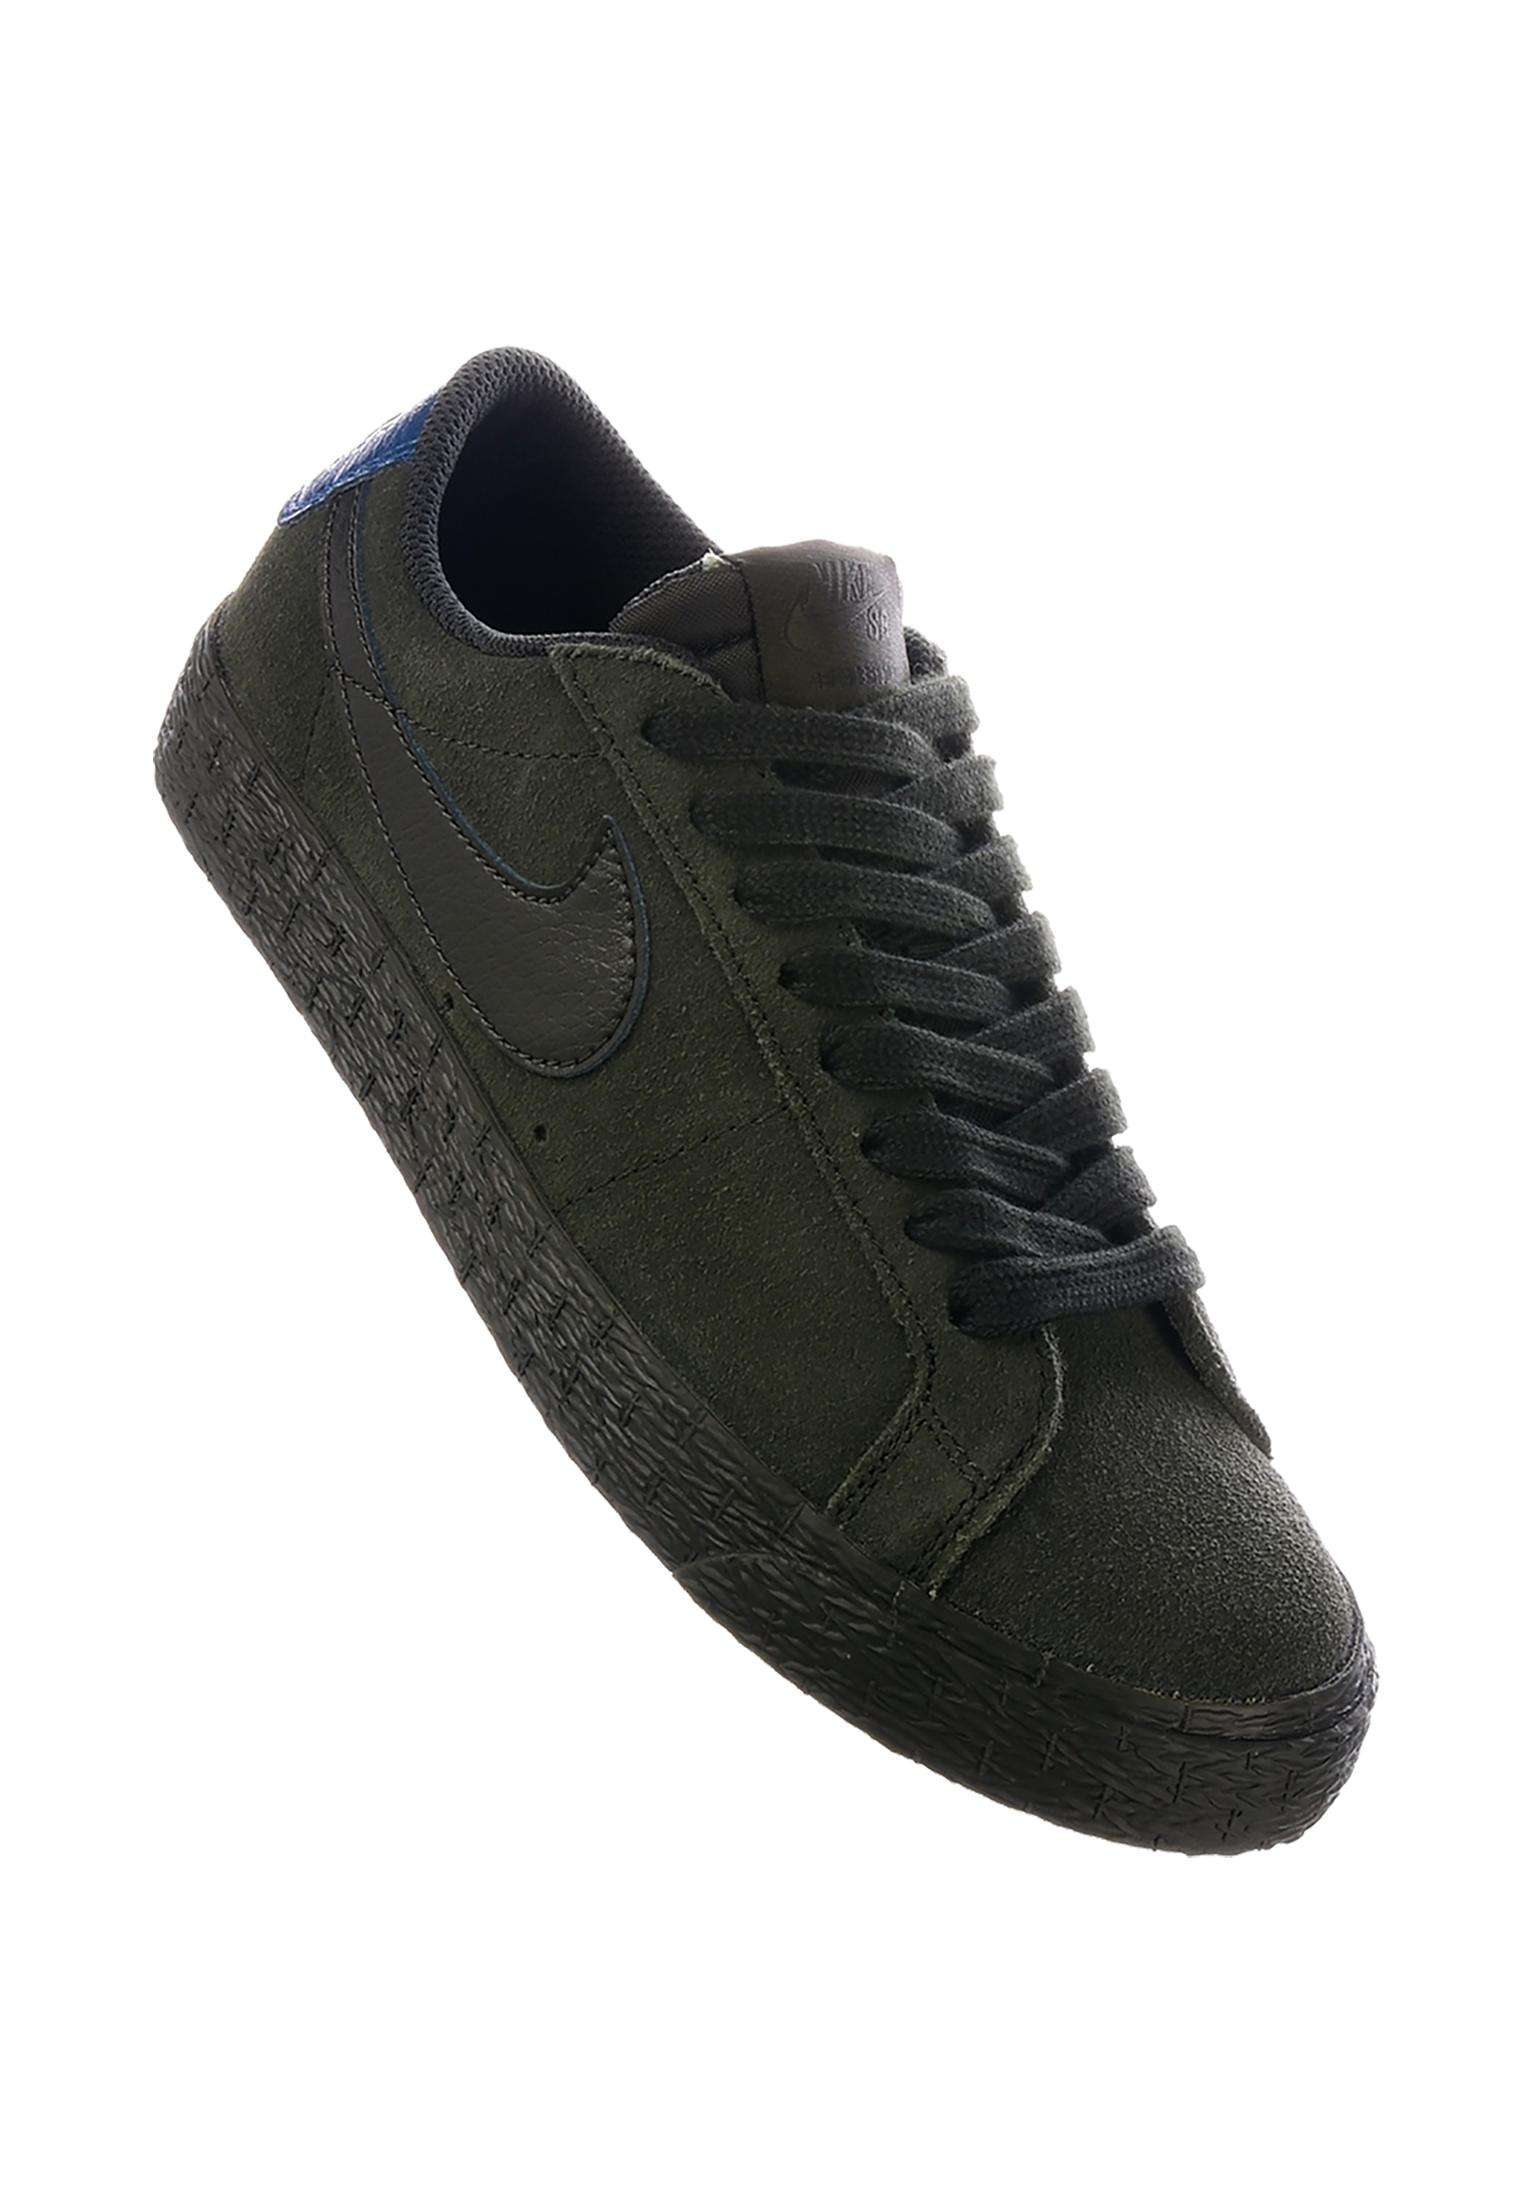 590ad93ec148 Zoom Blazer Low Nike SB All Shoes in sequoia-sequoia-blueforce for Women